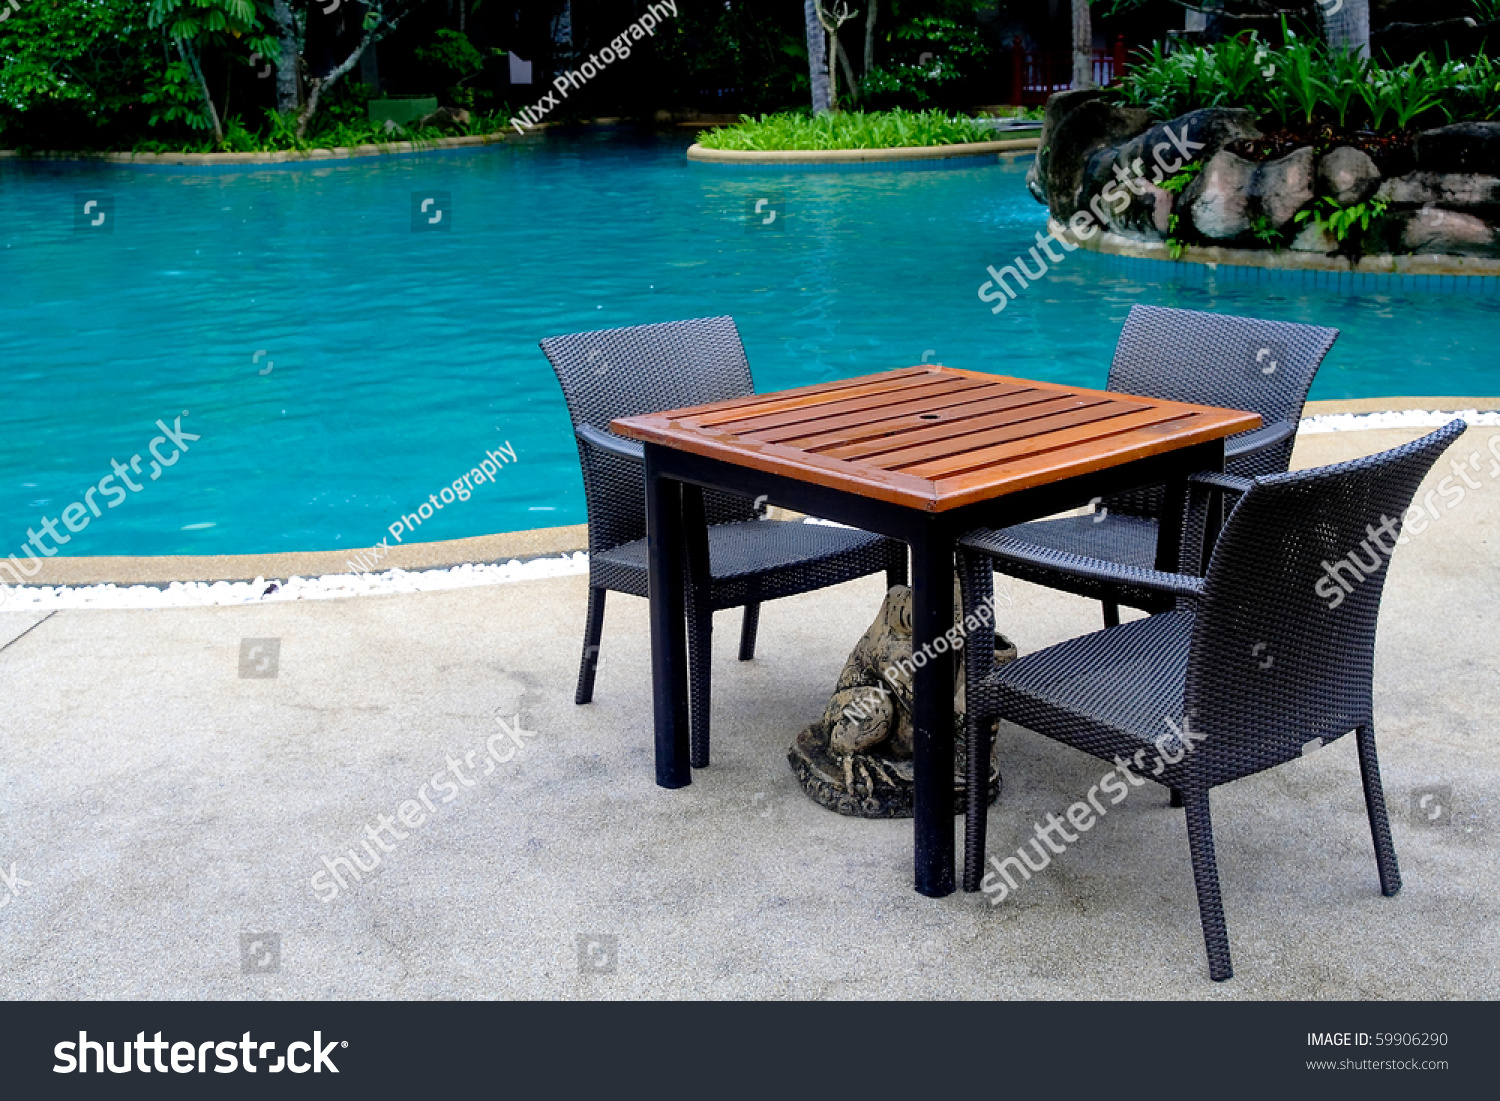 table chairs swimming pool stock photo